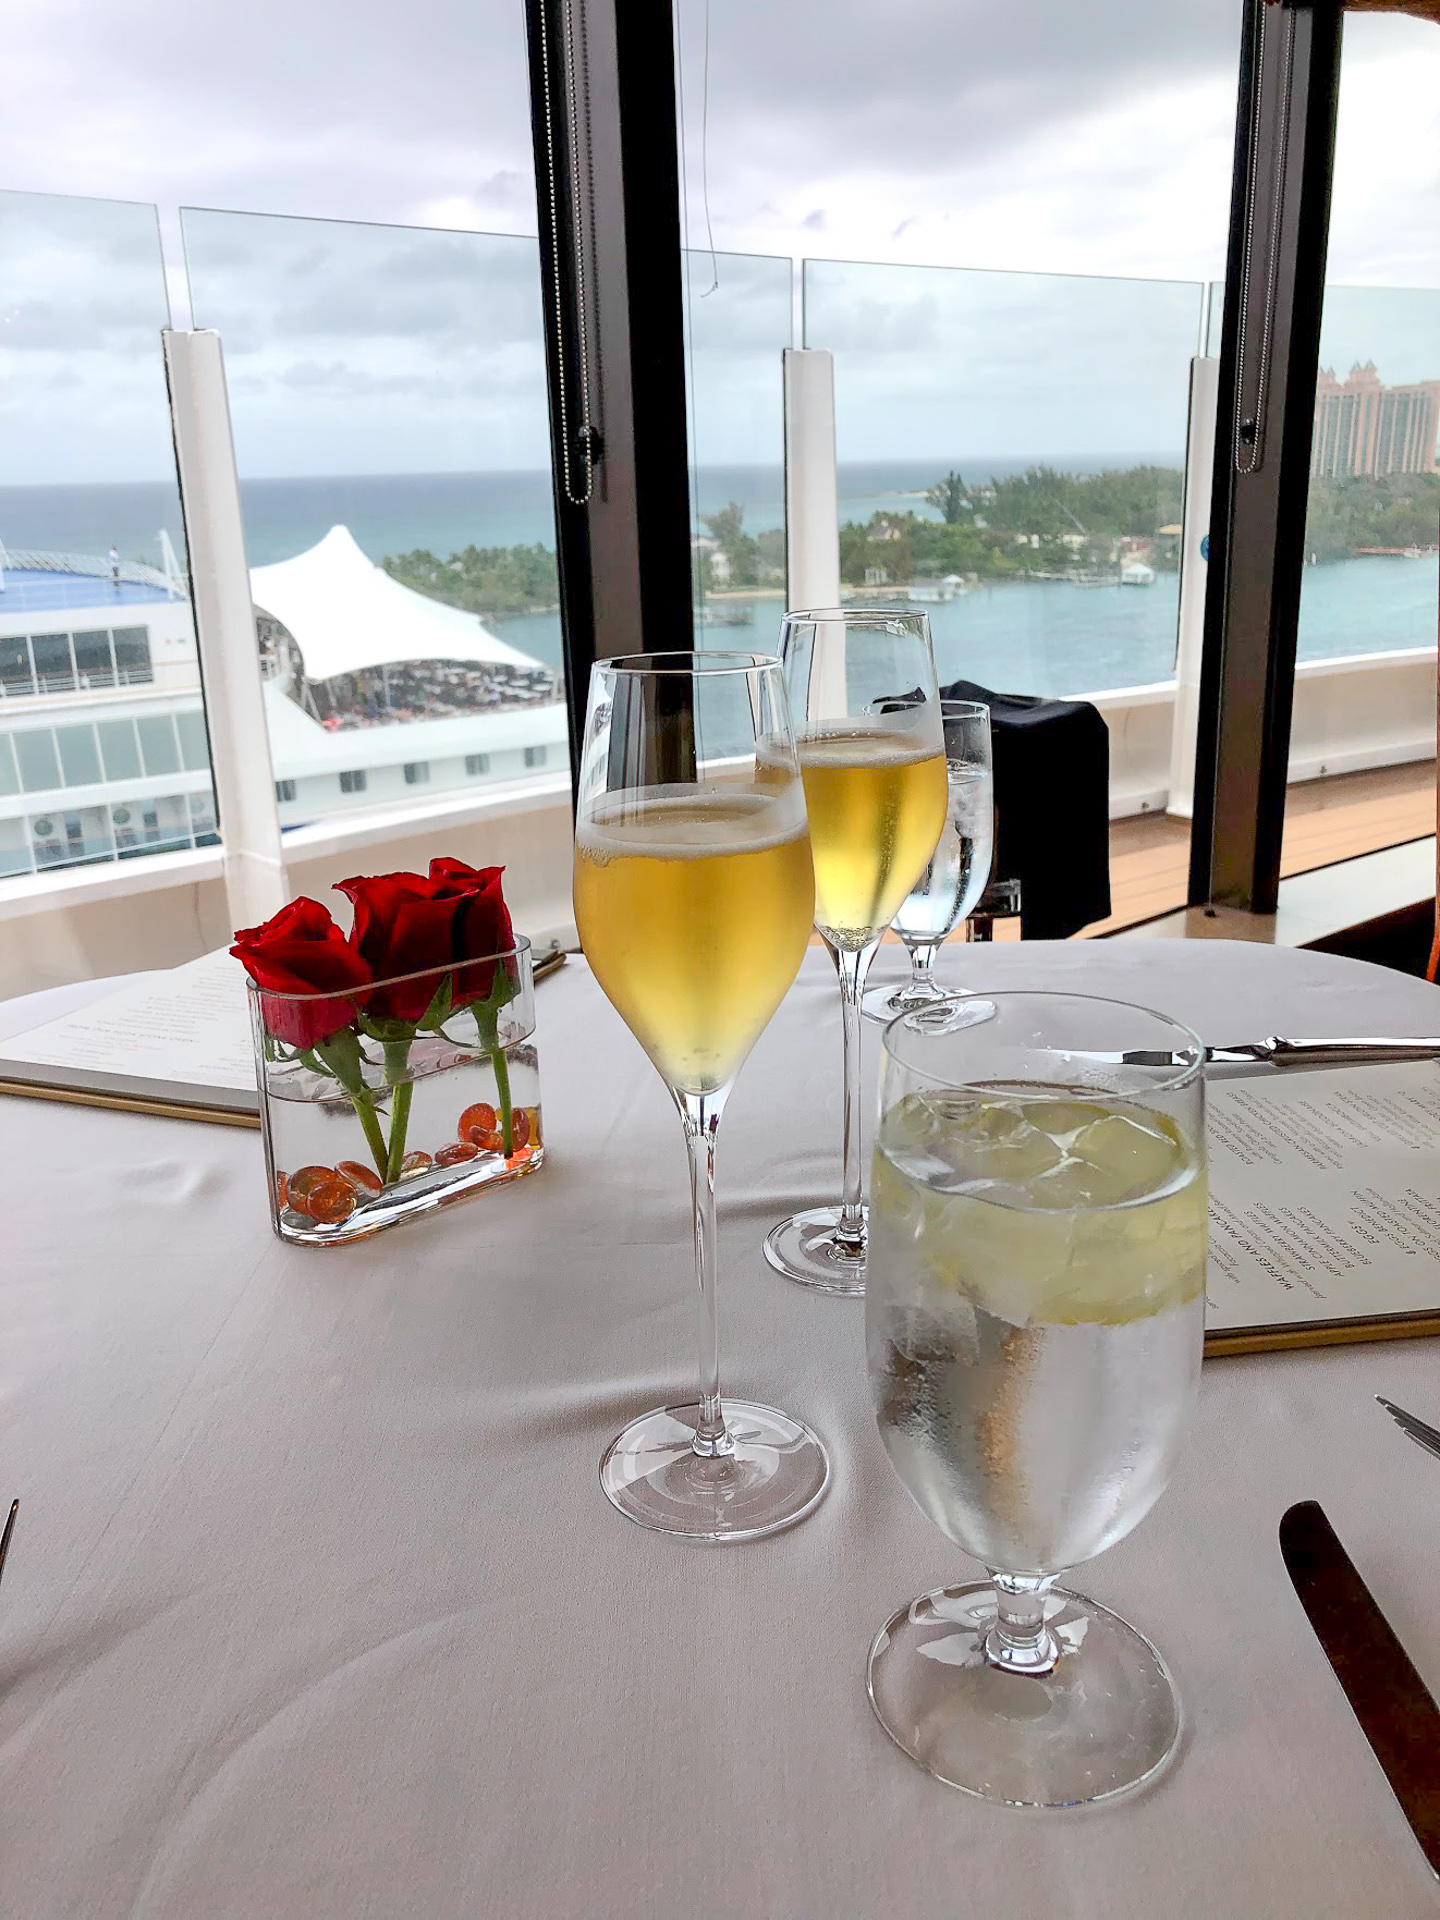 Complimentary sparkling apple cider at Palo Brunch on the Disney Dream